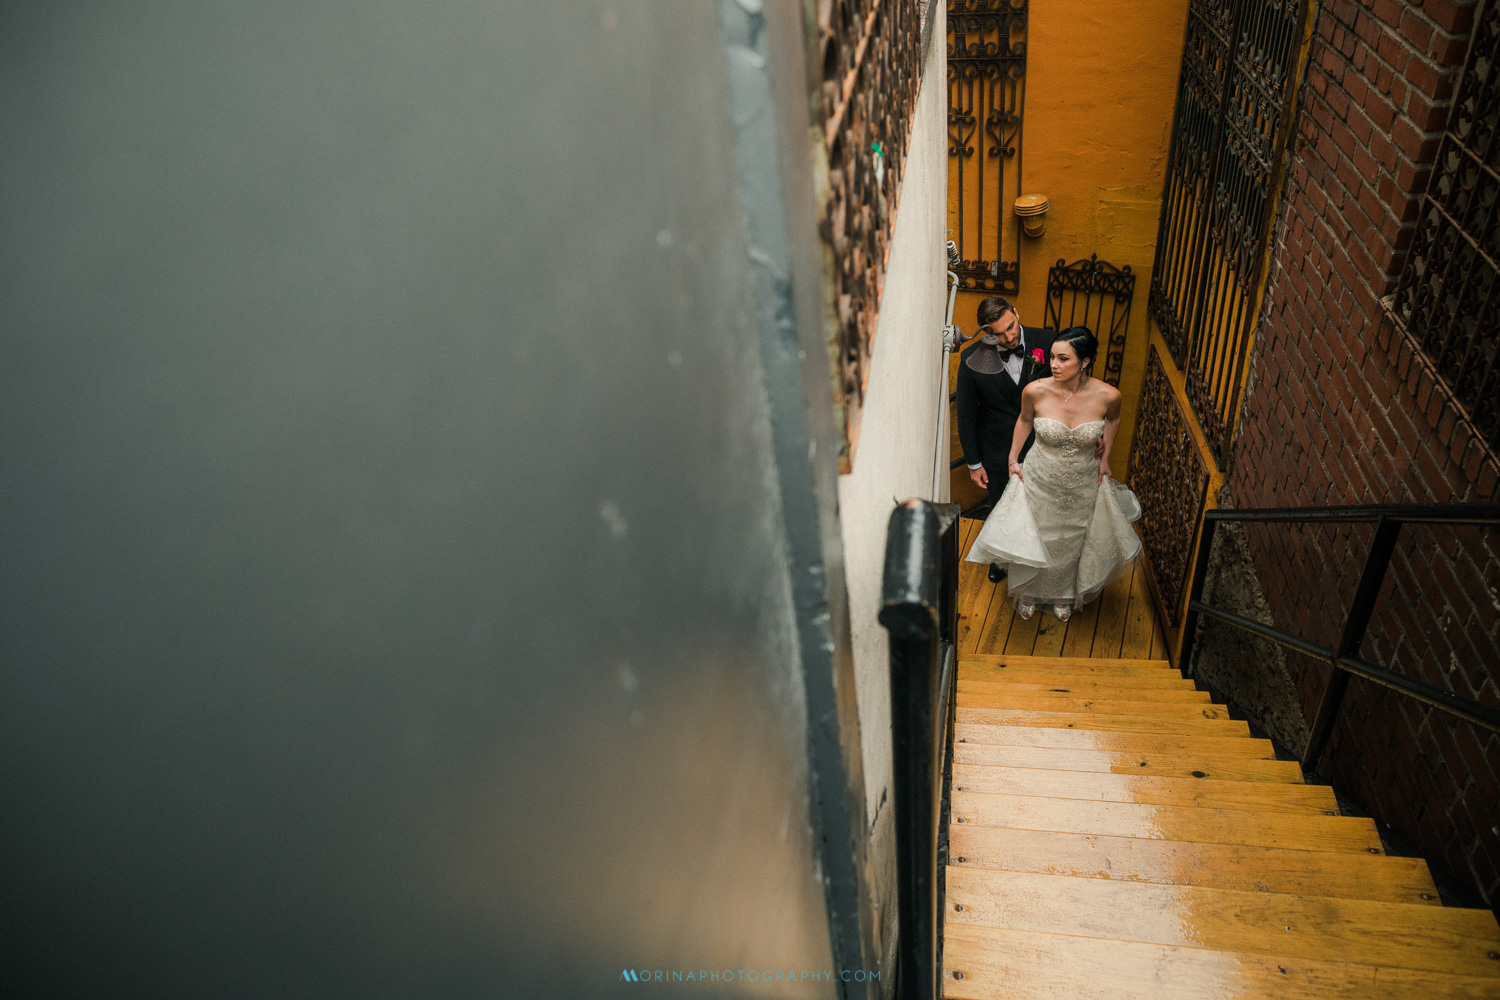 Jill & Rhett Wedding at Artesano Iron Works, Manayunk Philadelphia32.jpg